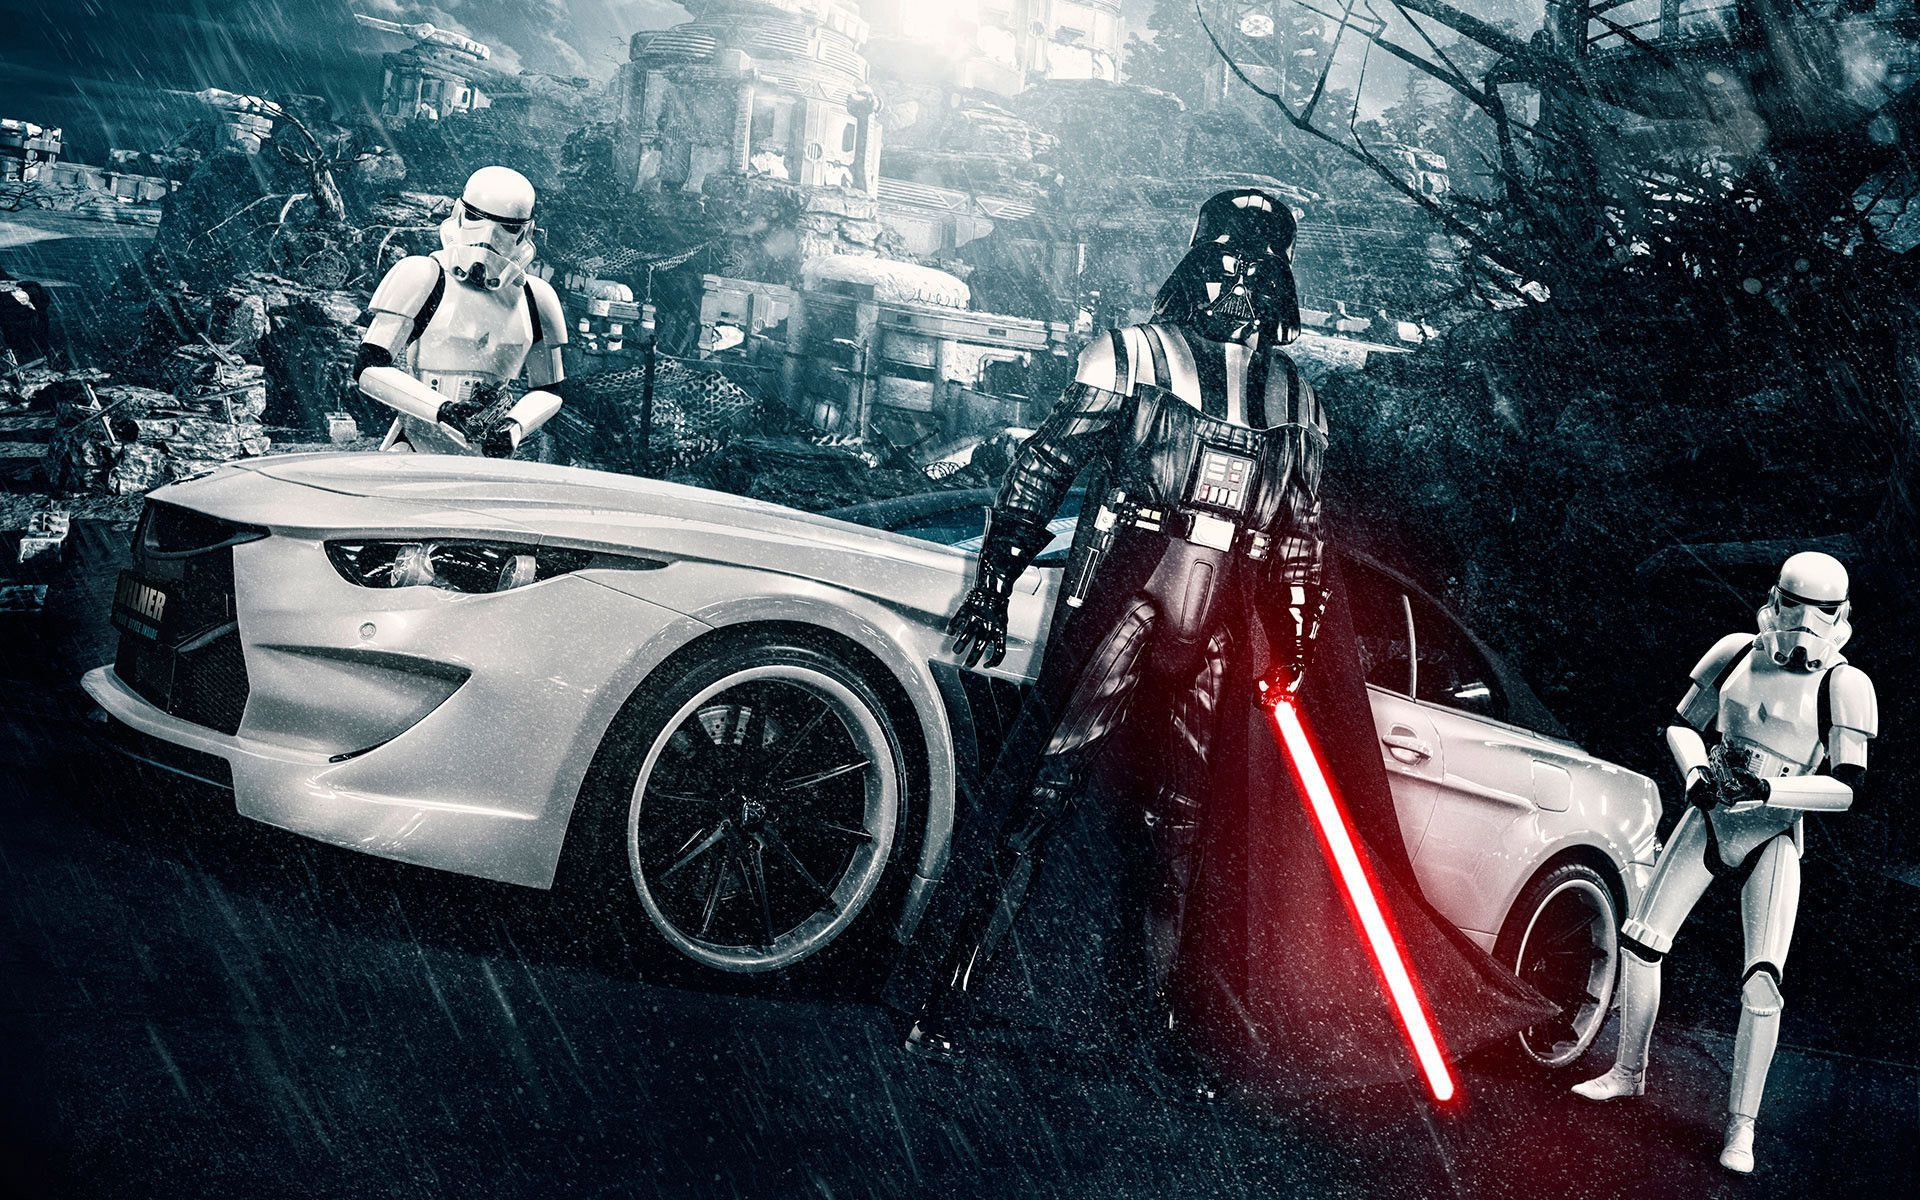 White car, Darth Wader and Stormtrooper